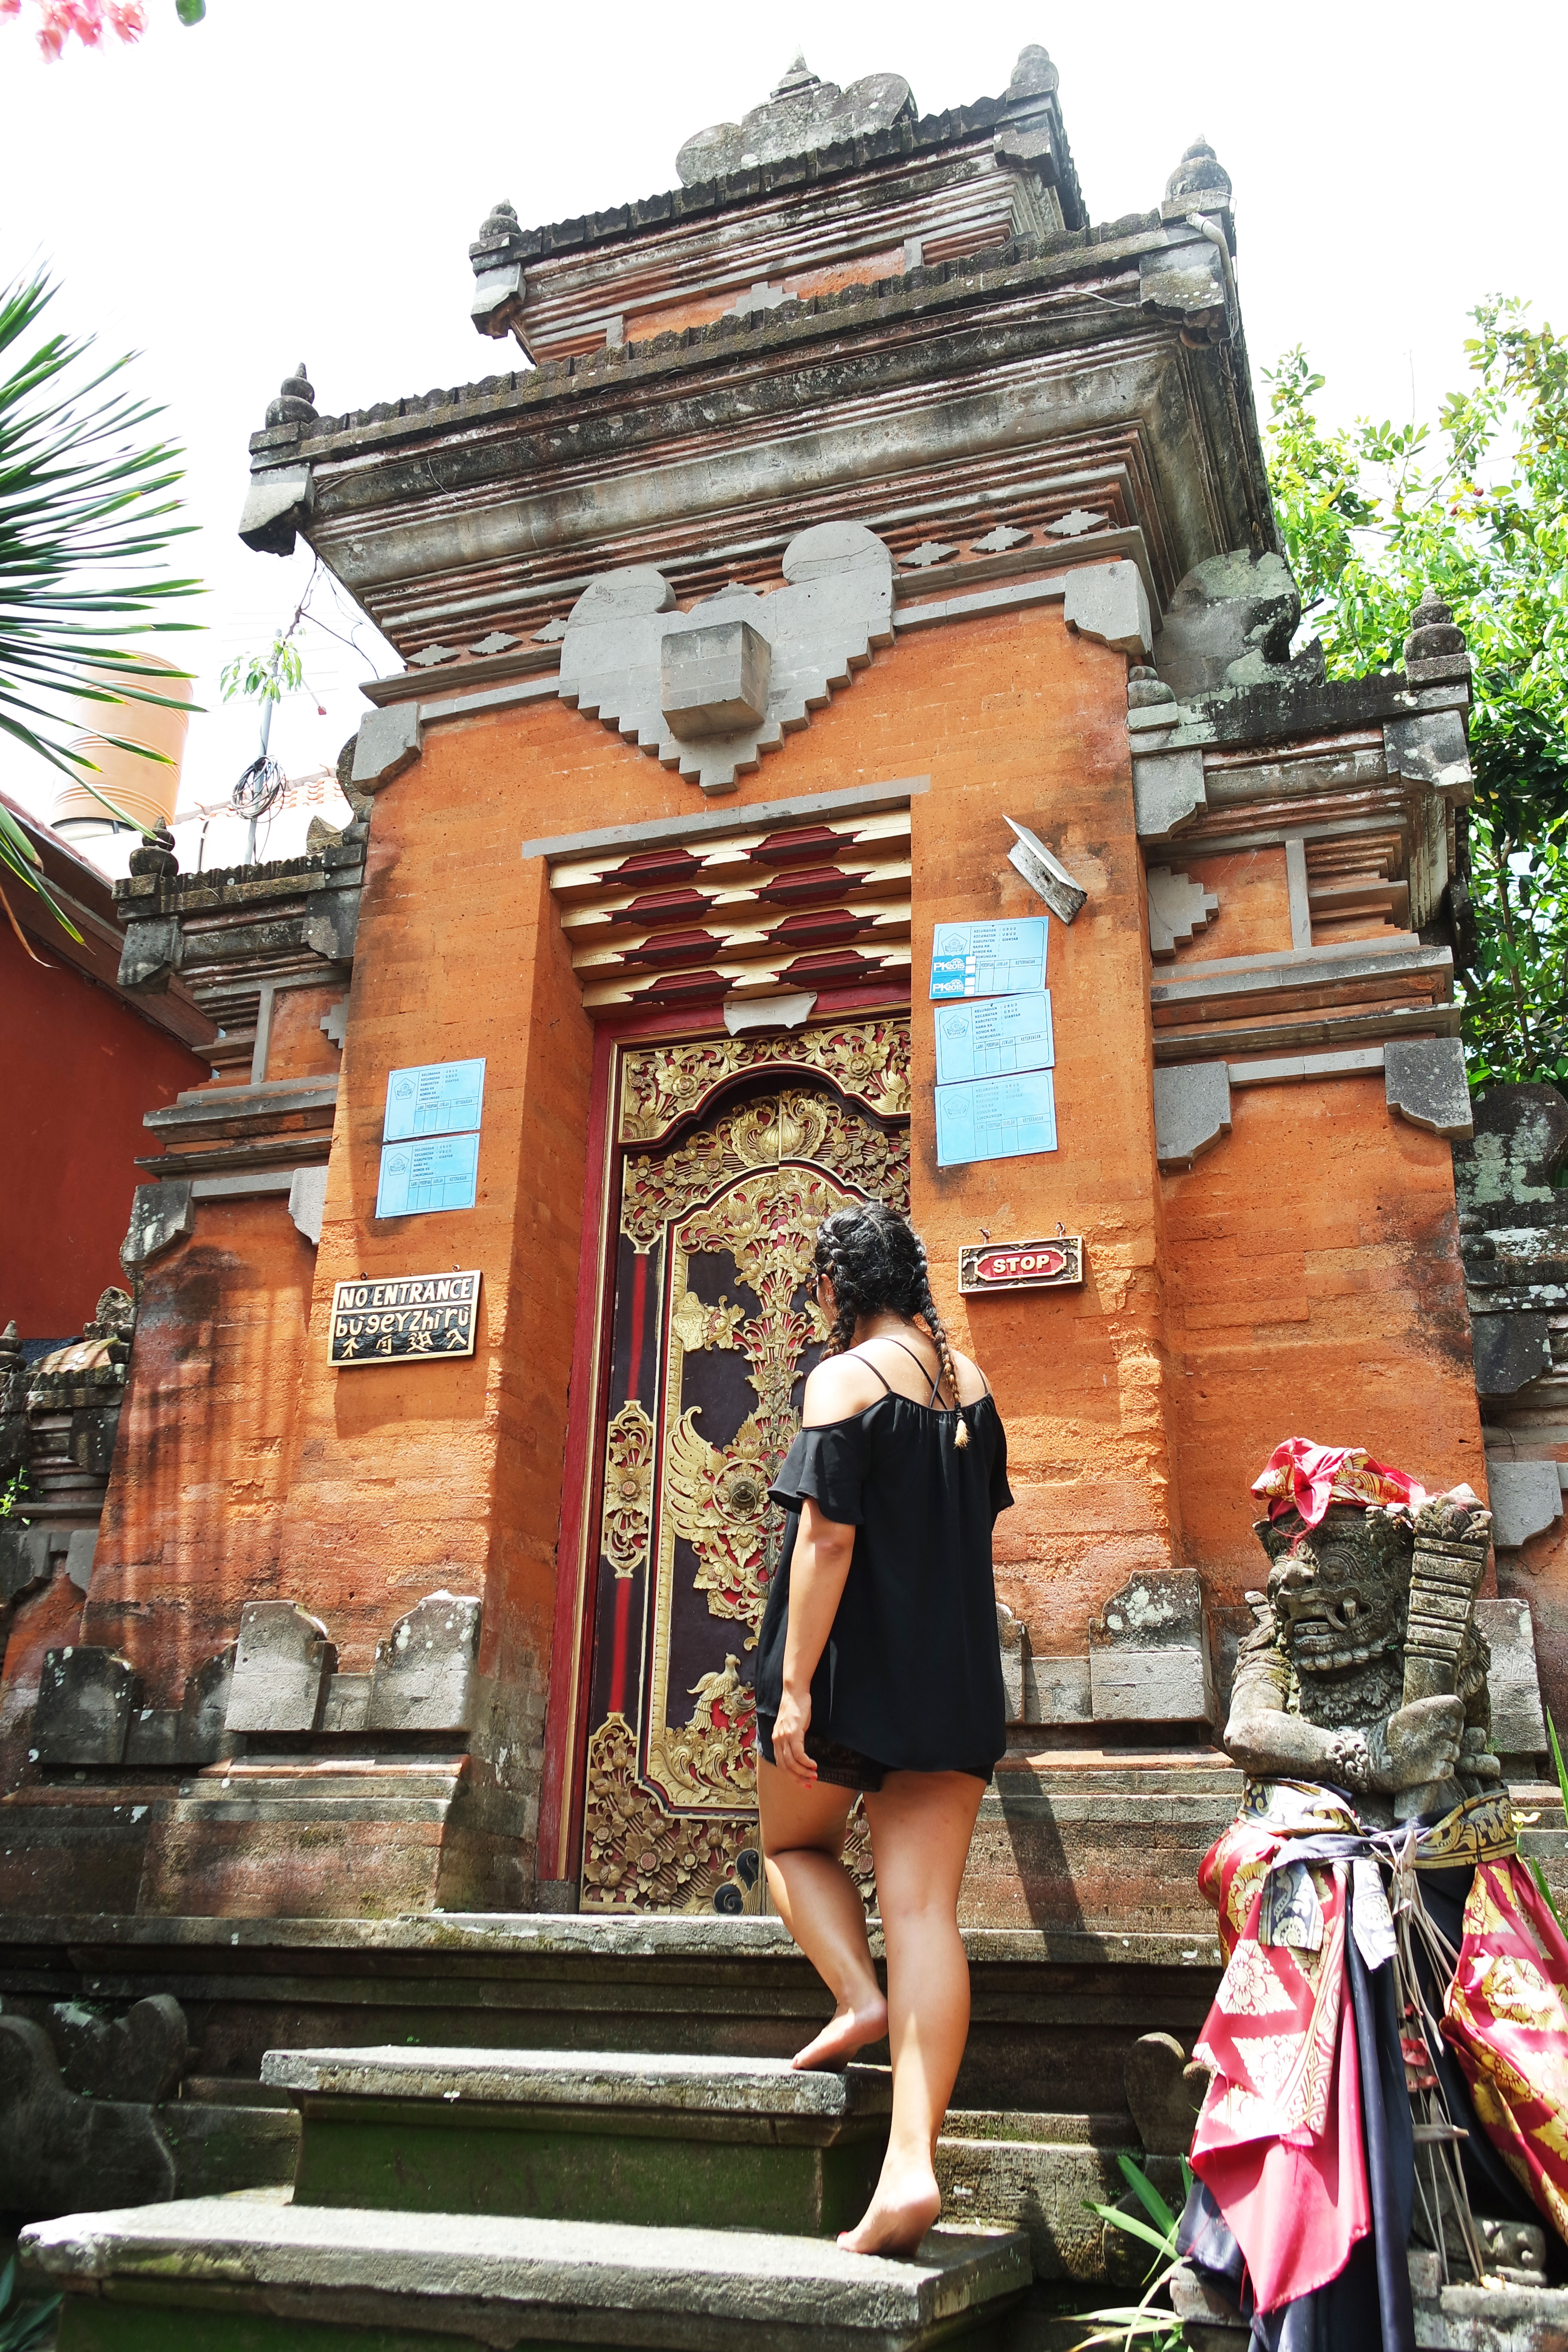 choses-à-faire-visiter-bali-ubud-blog-guide-city-temple-palais